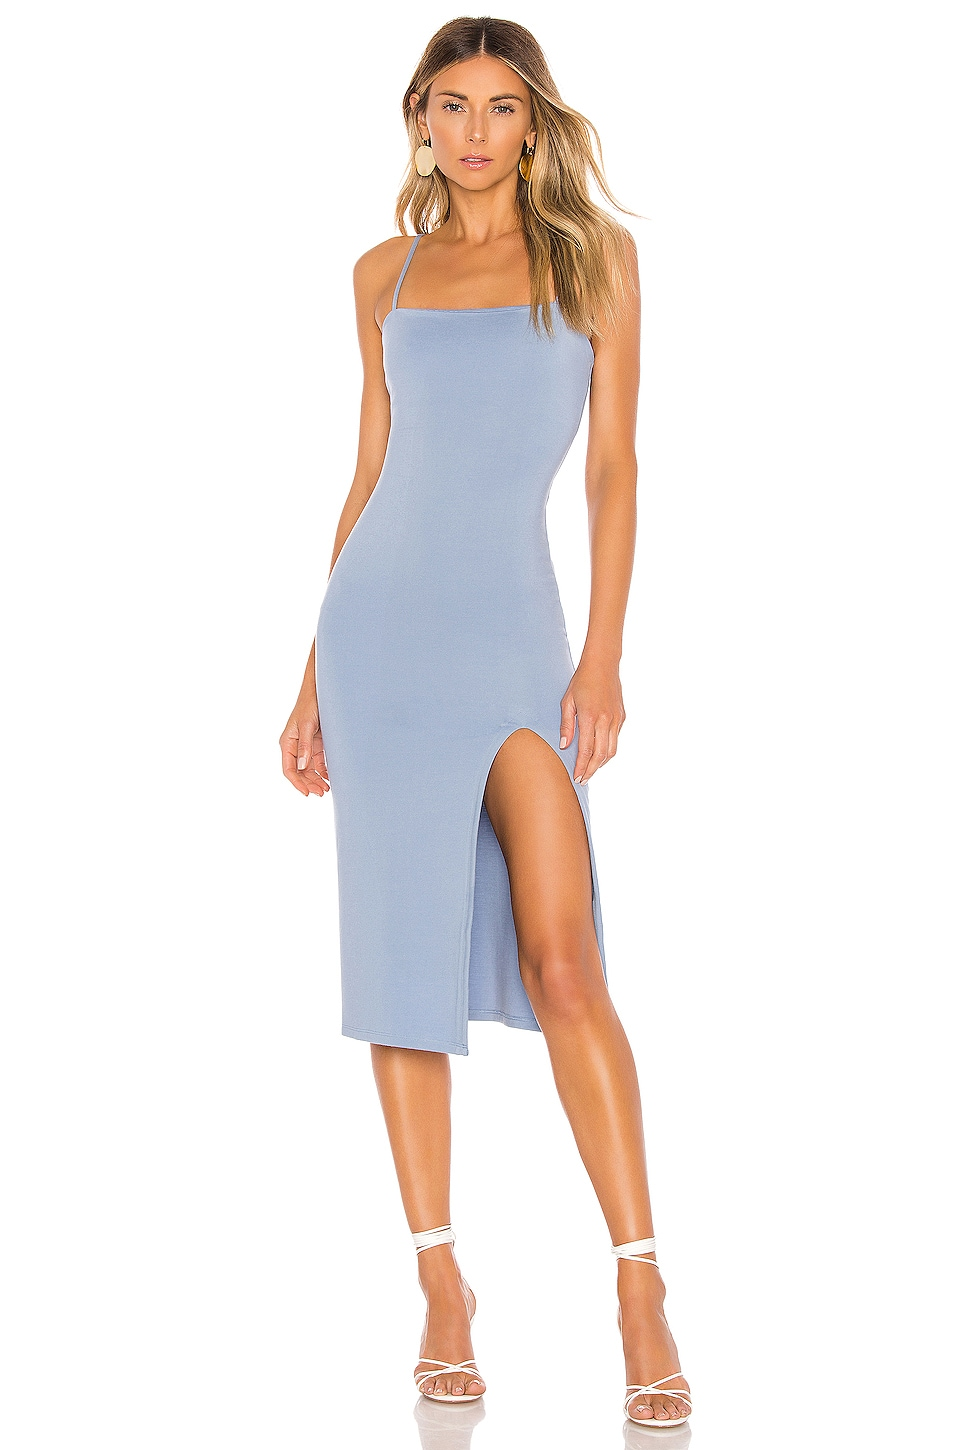 Lovers + Friends Skylar Midi in Blue Bell